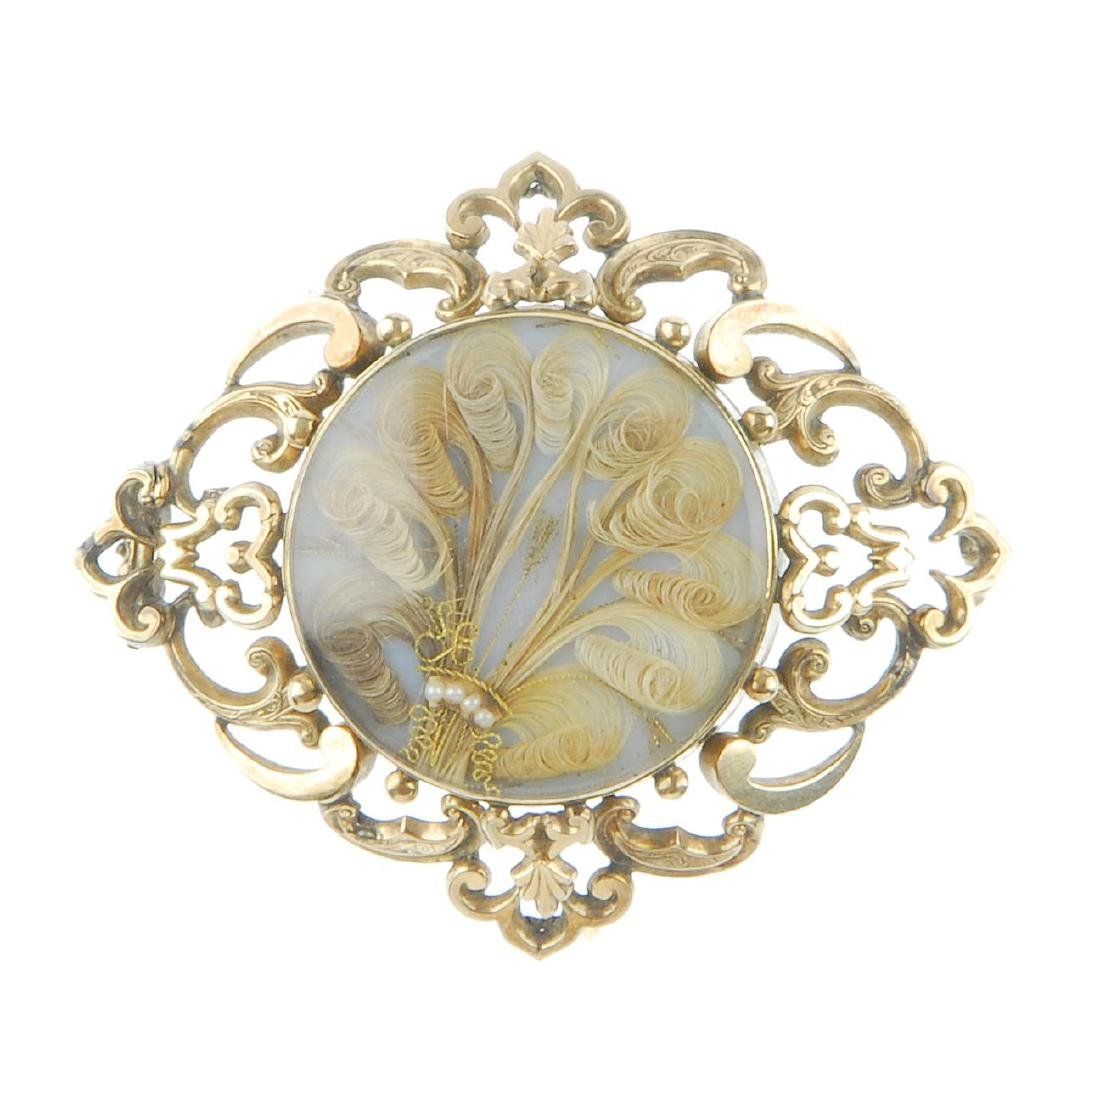 A late Victorian 9ct gold memorial brooch. The glazed